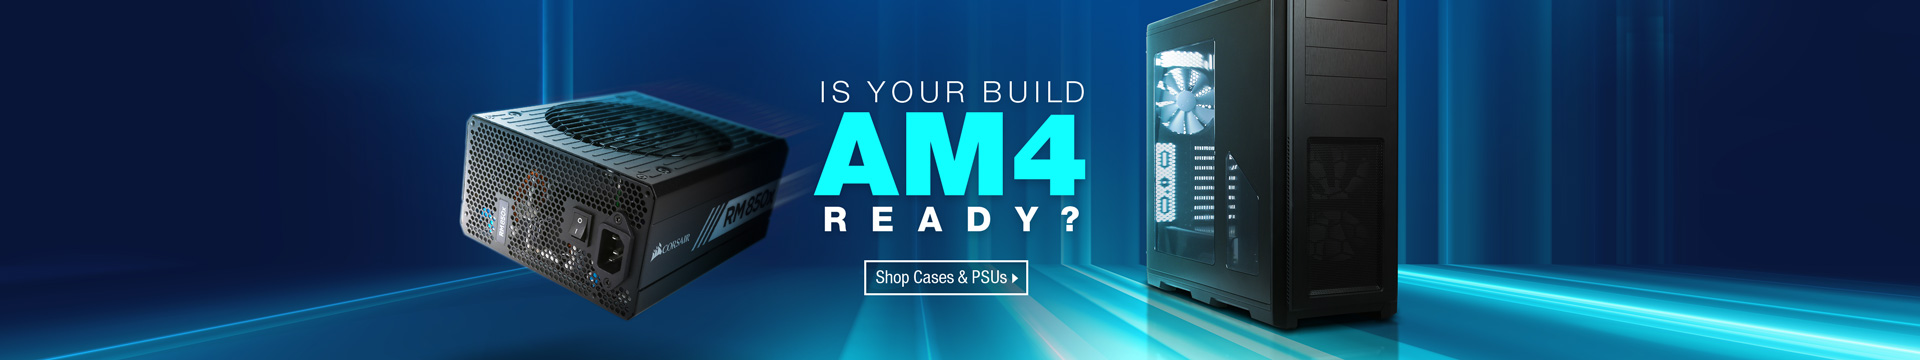 Is Your Build AM4 Ready